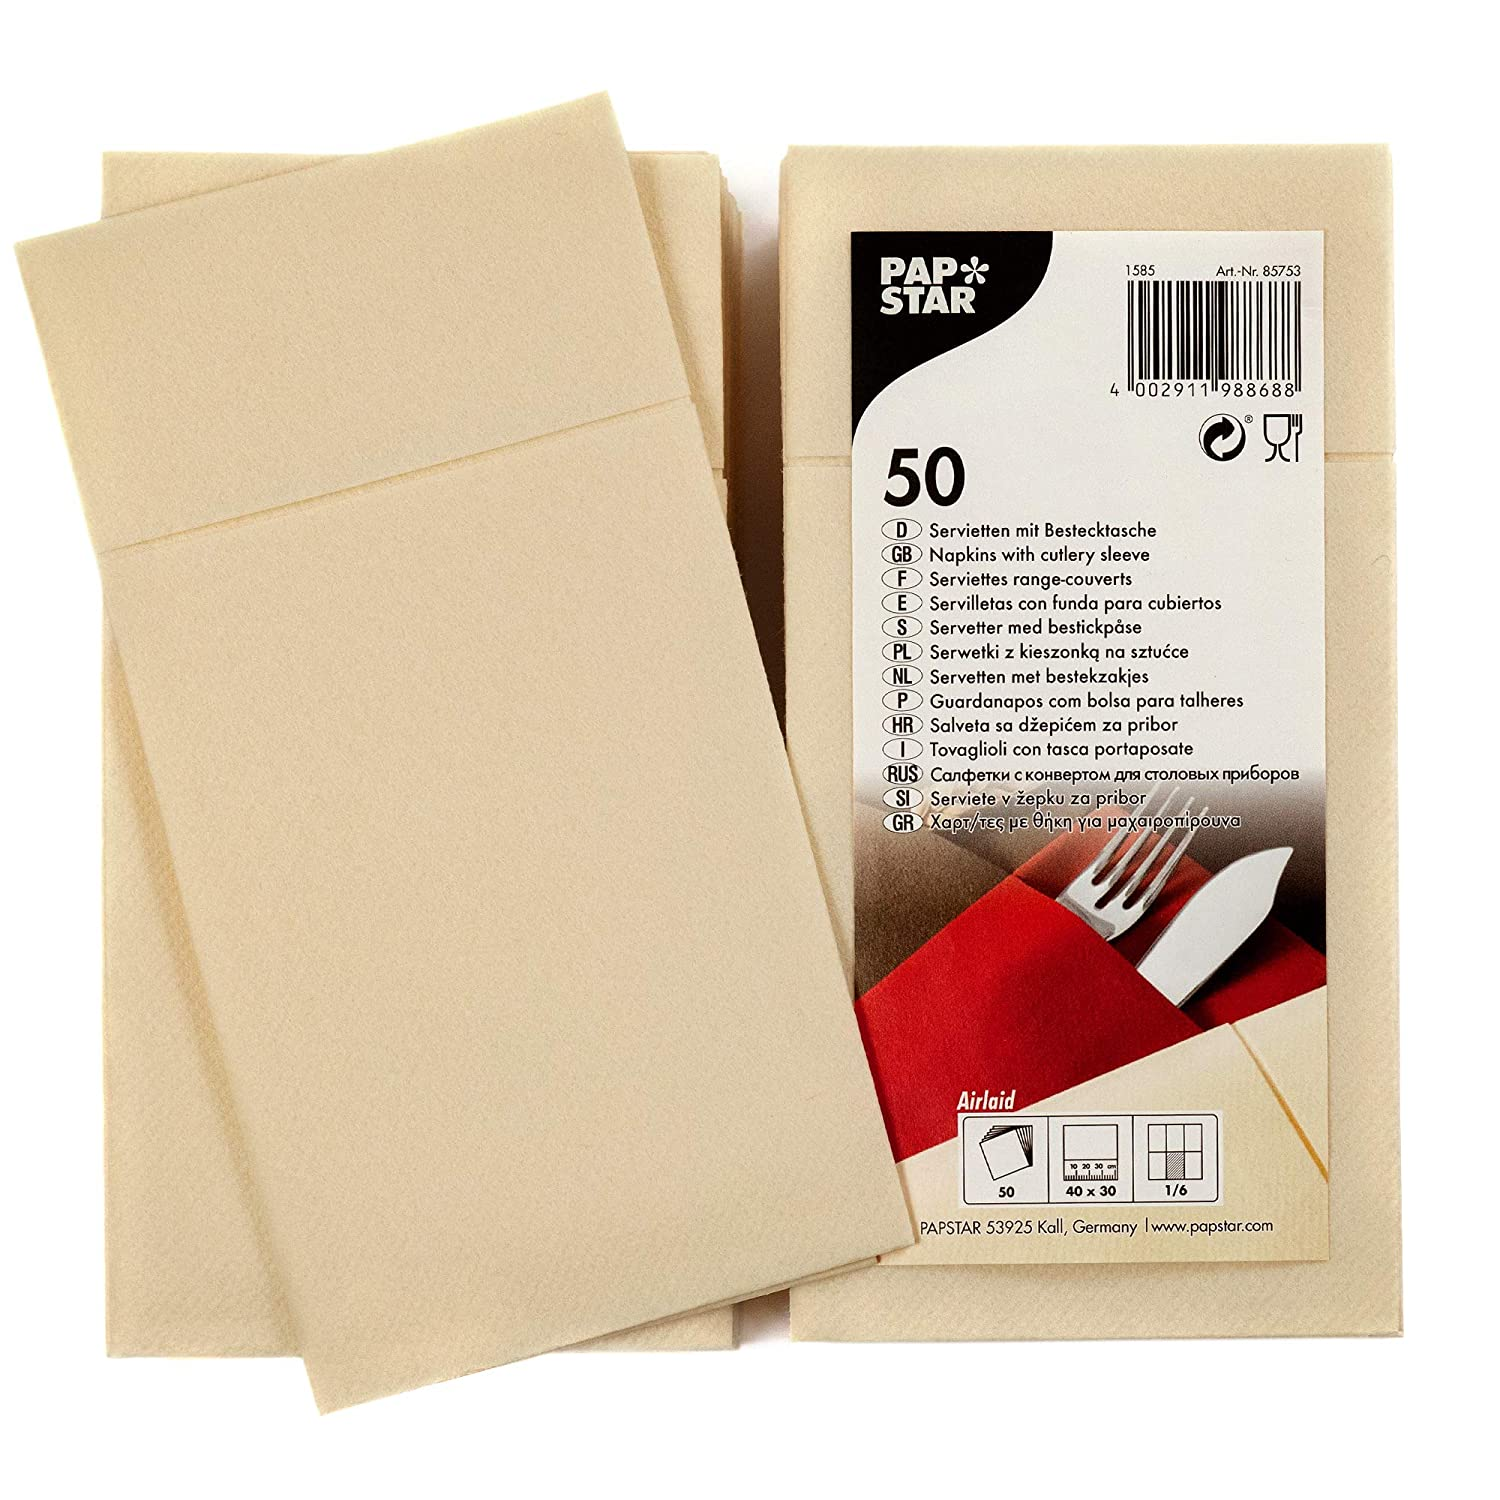 Amazon.com: Papstar Cloth-Like Paper Disposable Cutlery Pocket Sleeve Napkins, 16